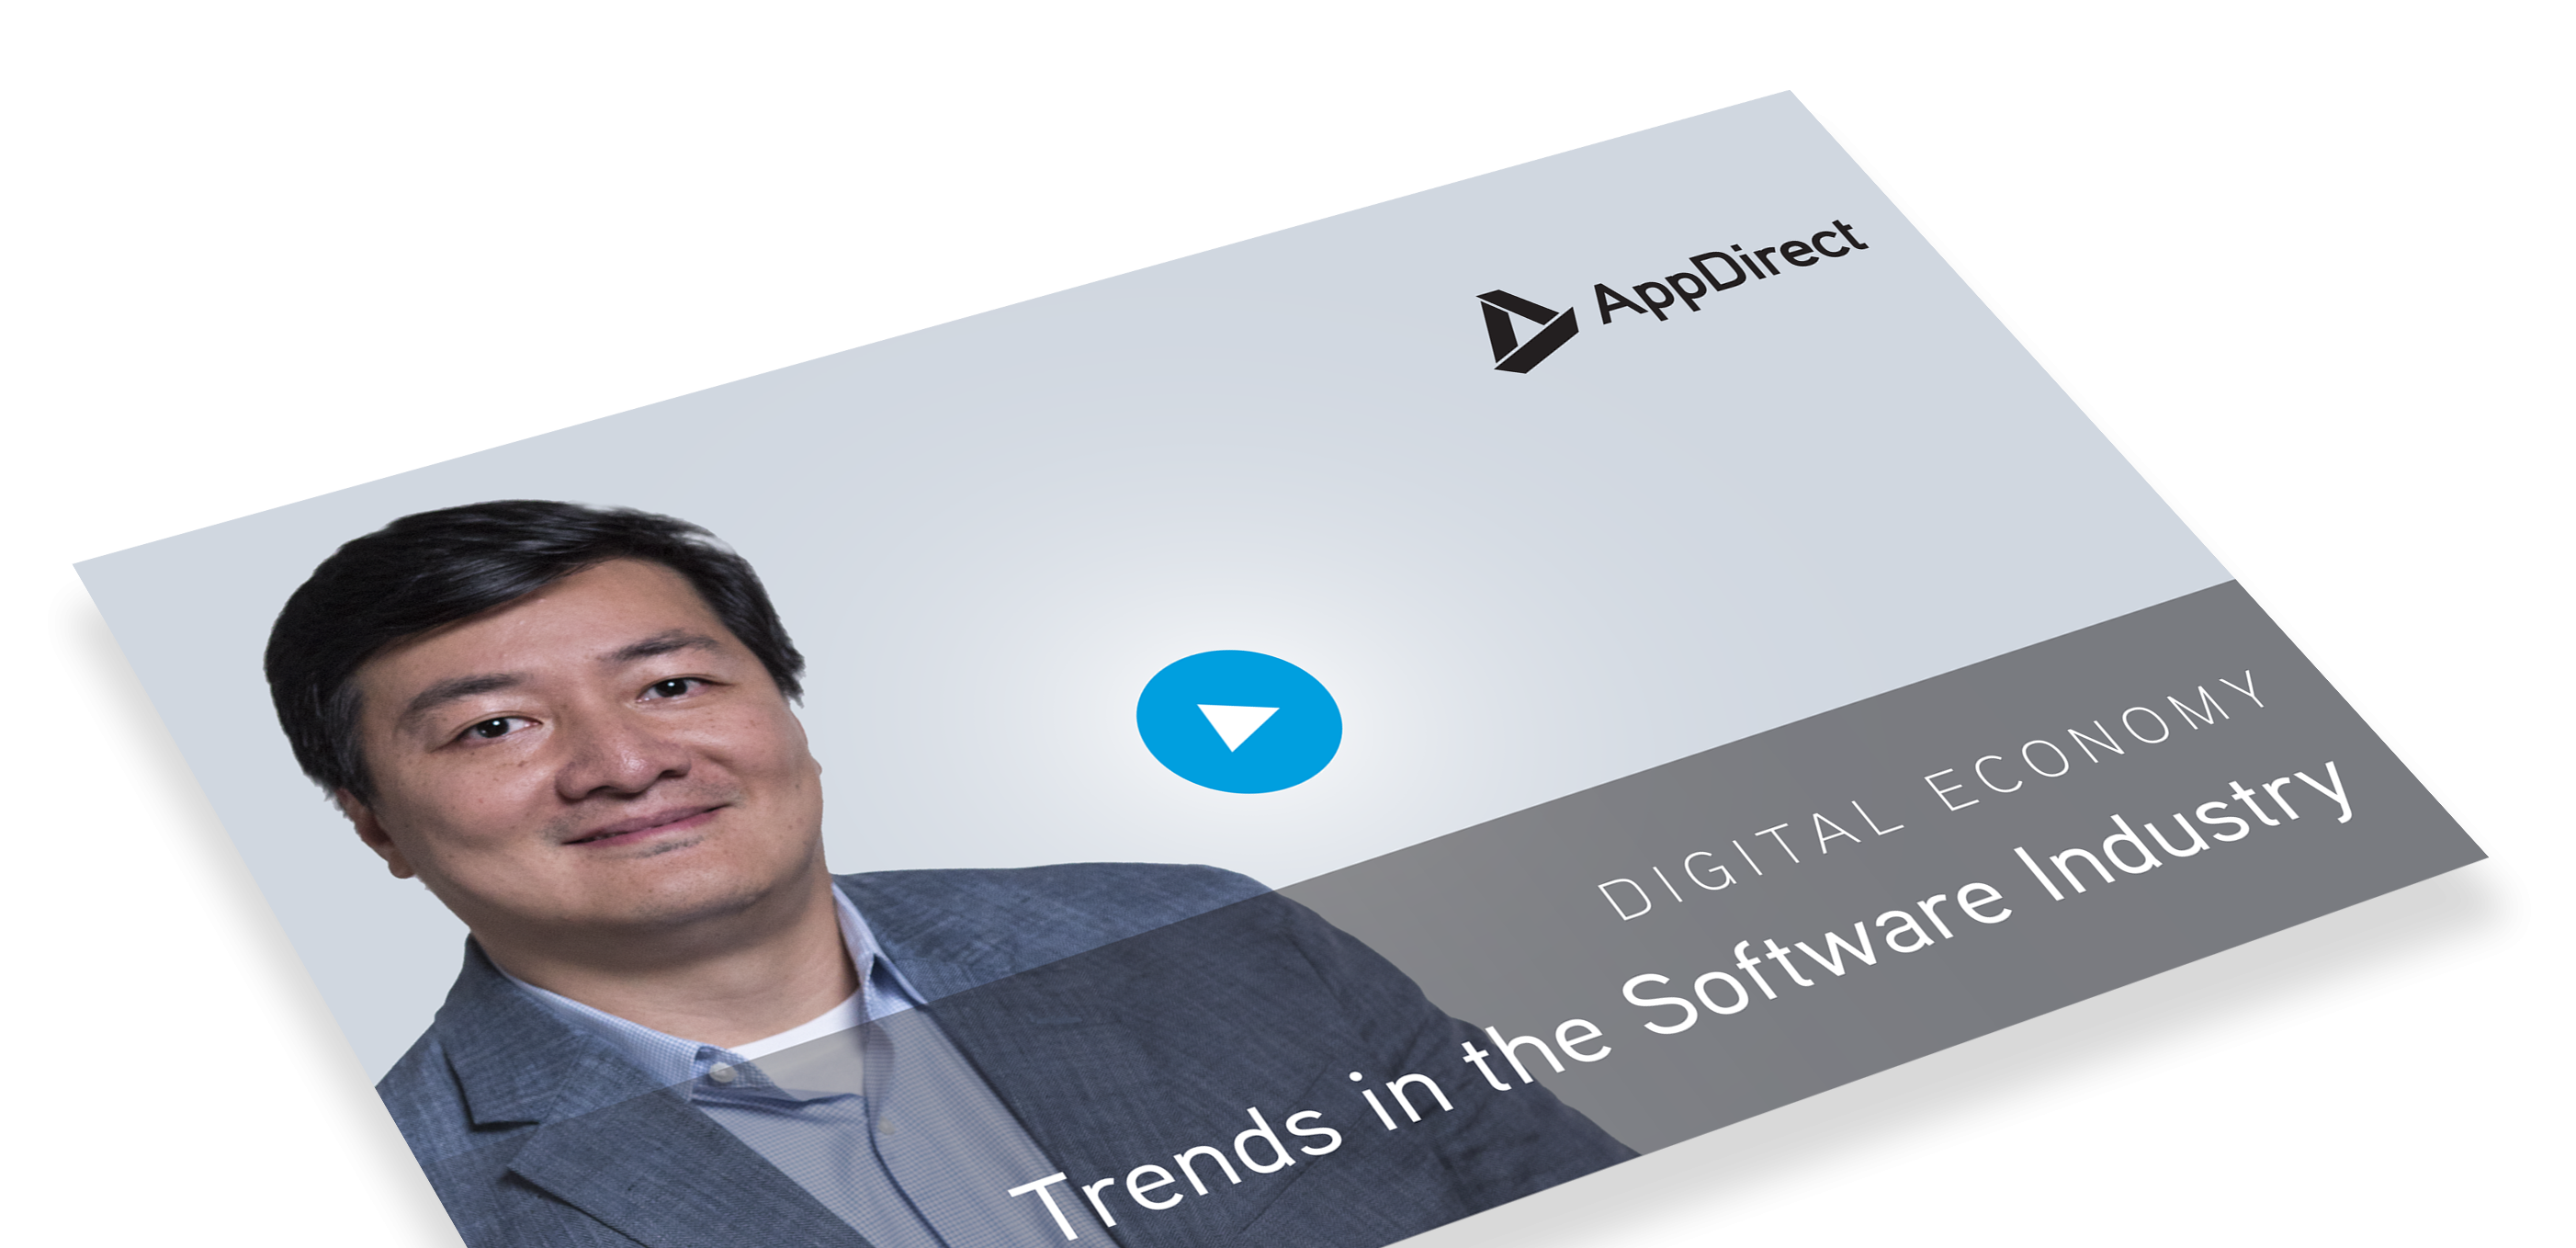 Digital Economy Trends in the Software Industry